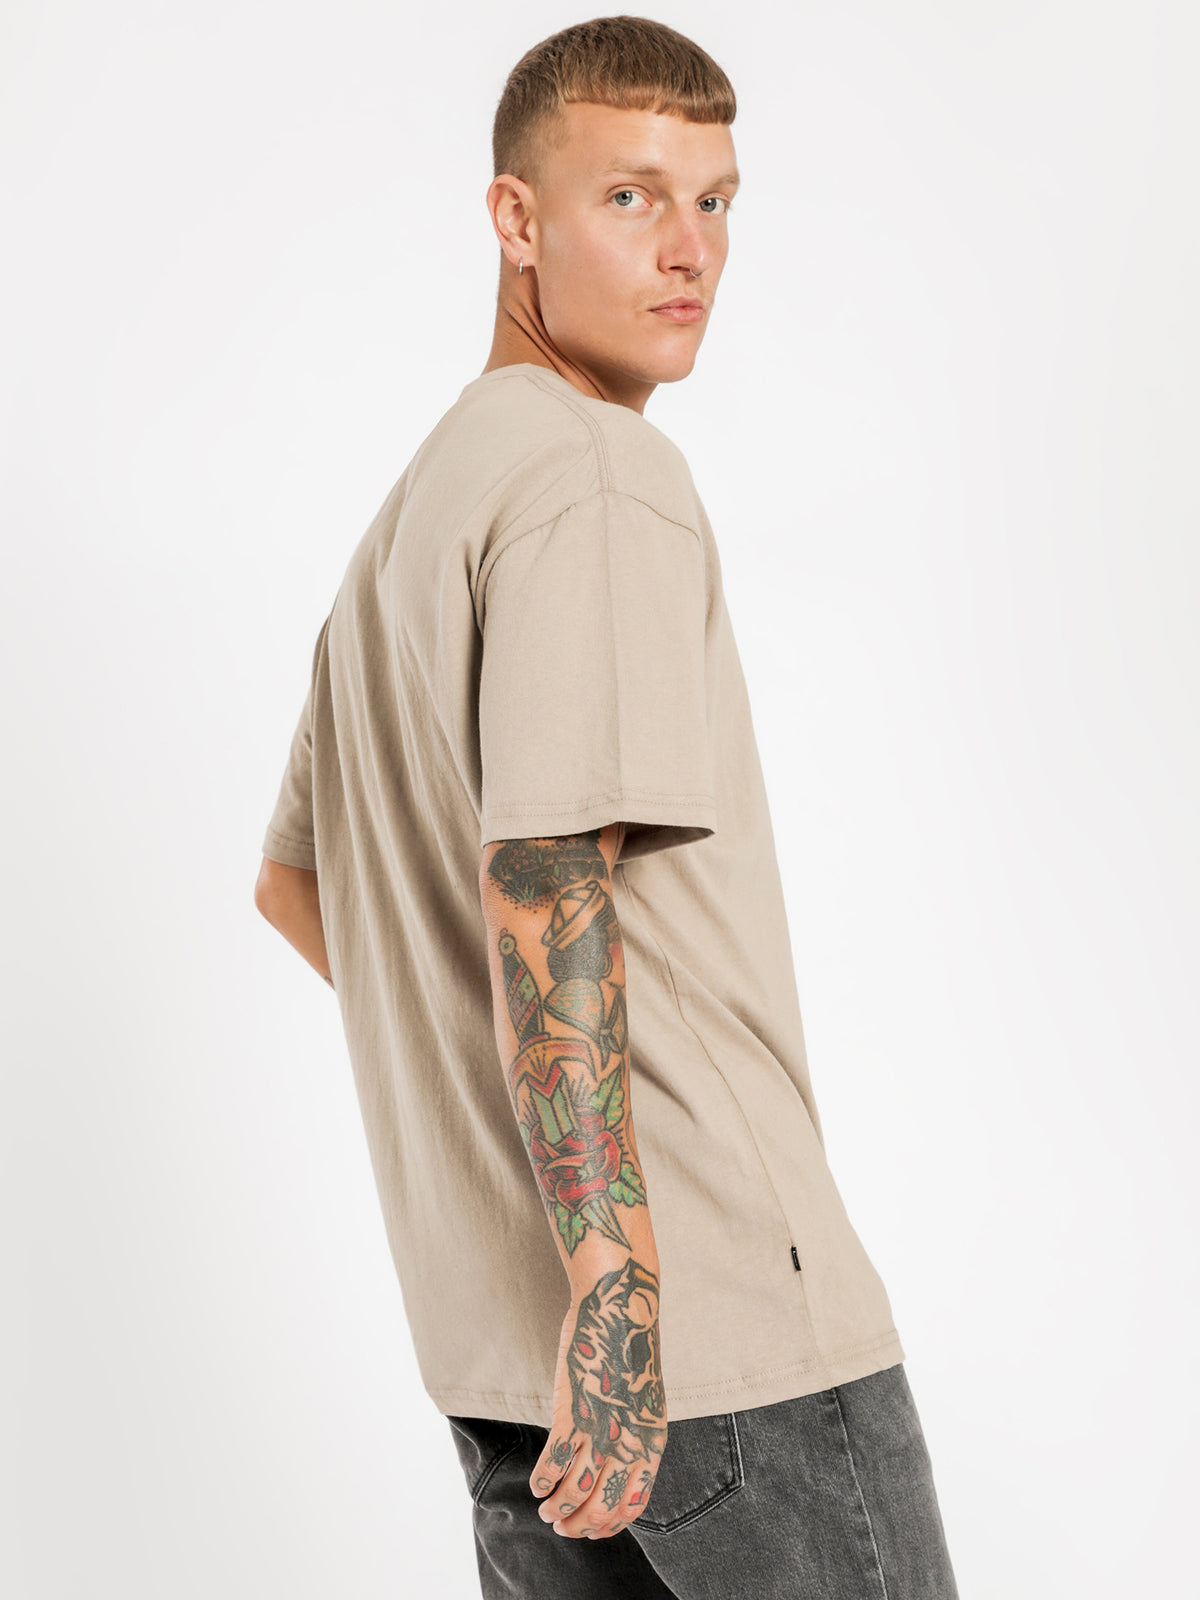 Solid Italic Short Sleeve T-Shirt in Atmosphere